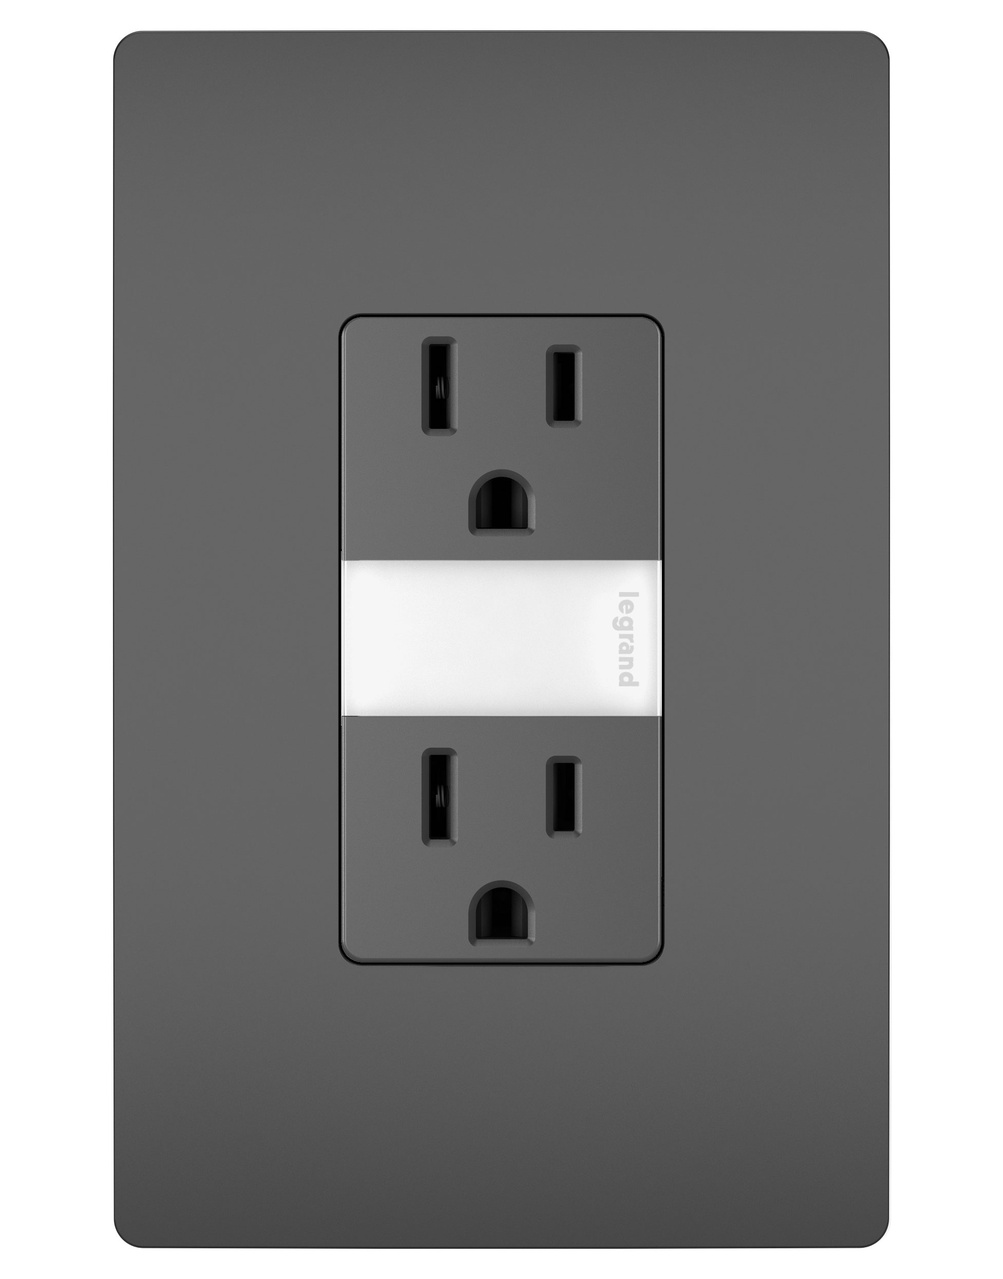 Radiant night light w two 15a tamper resistant outlets black ntl885trbkcc6 p mozeypictures Image collections